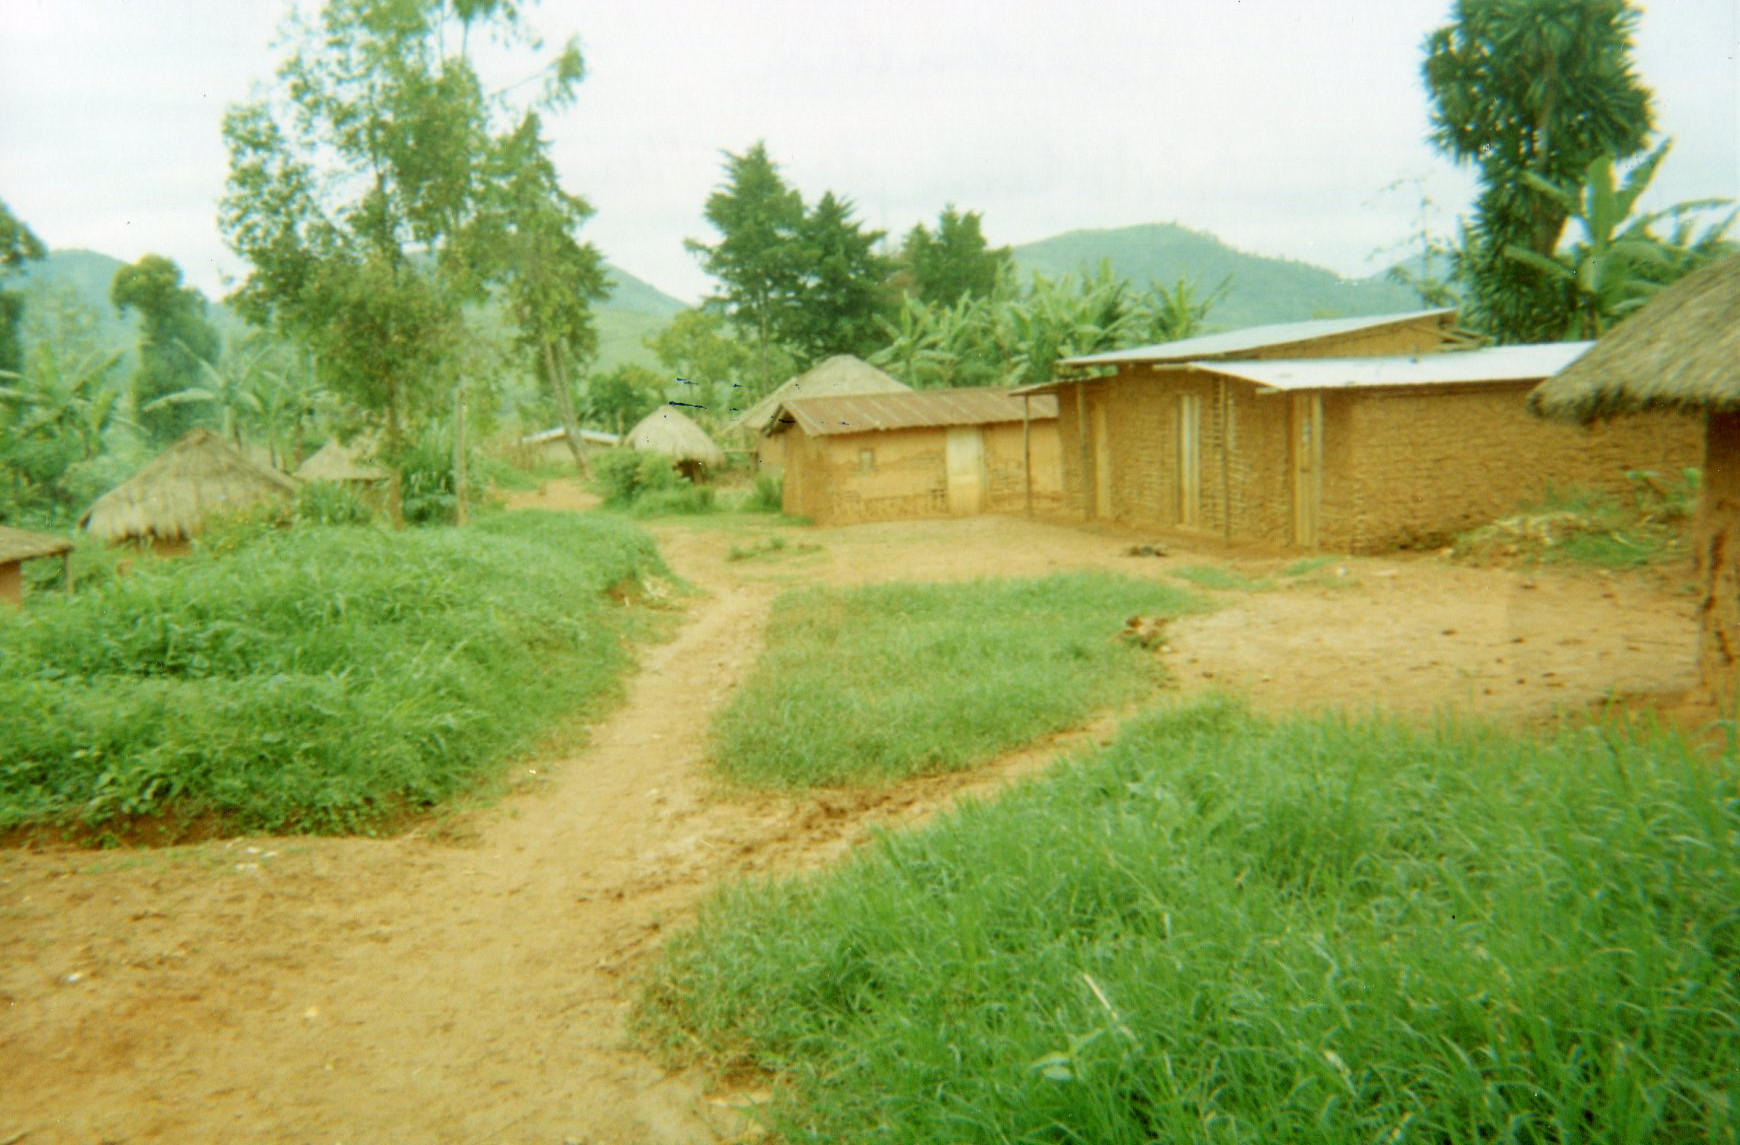 Reconstruction: People are trying to rehabilitate the village.